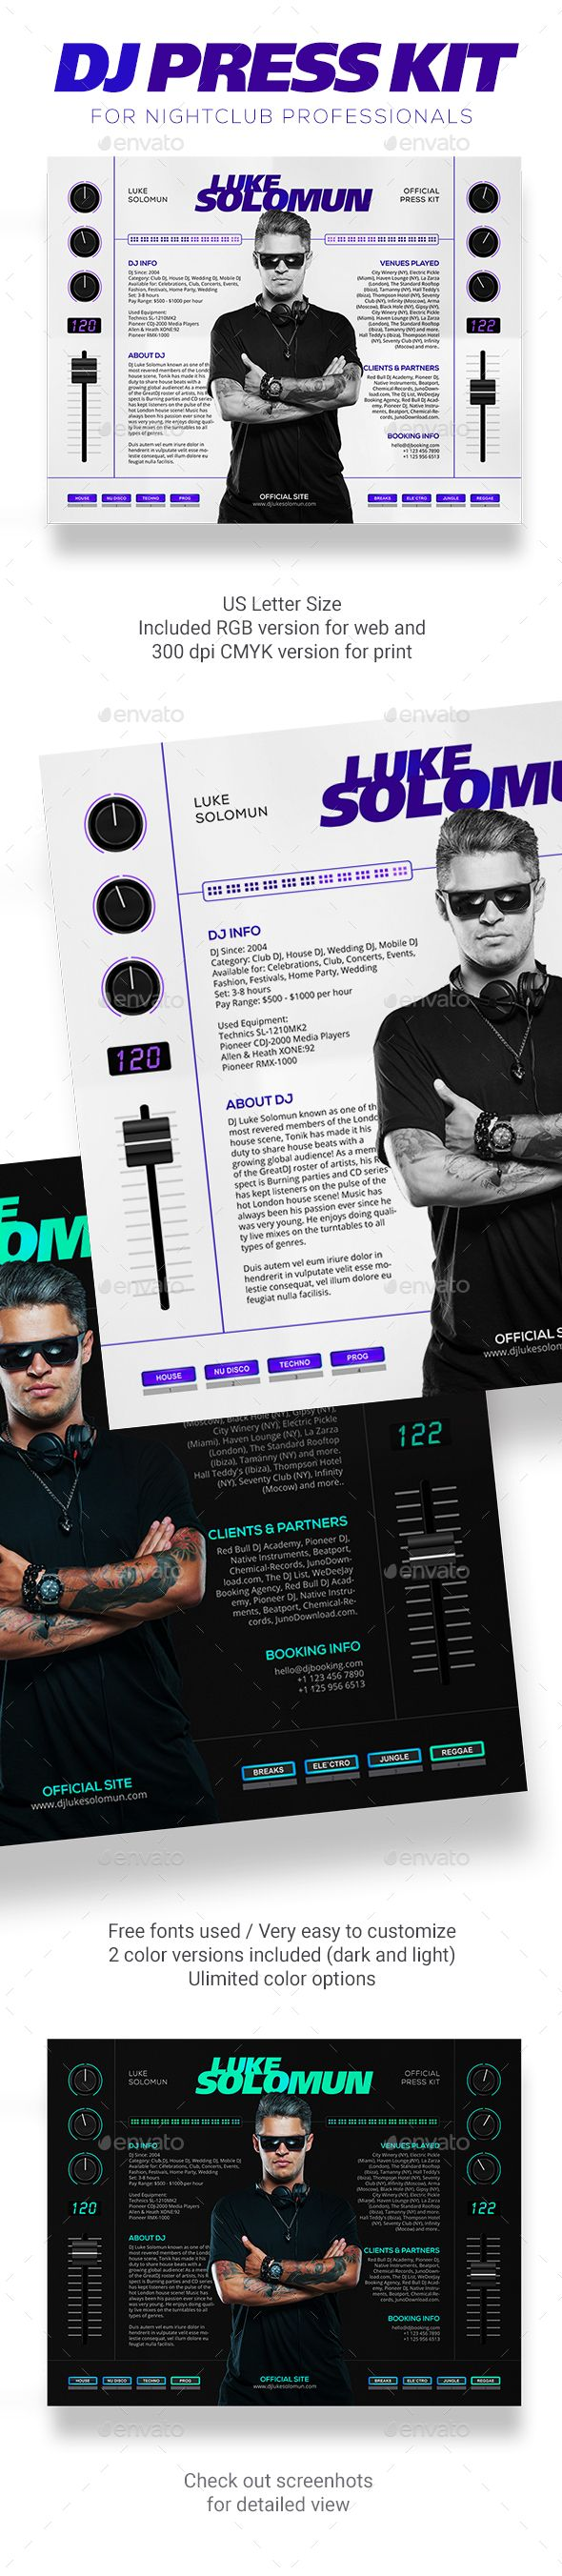 madjestik dj press kit dj resume dj rider psd template press